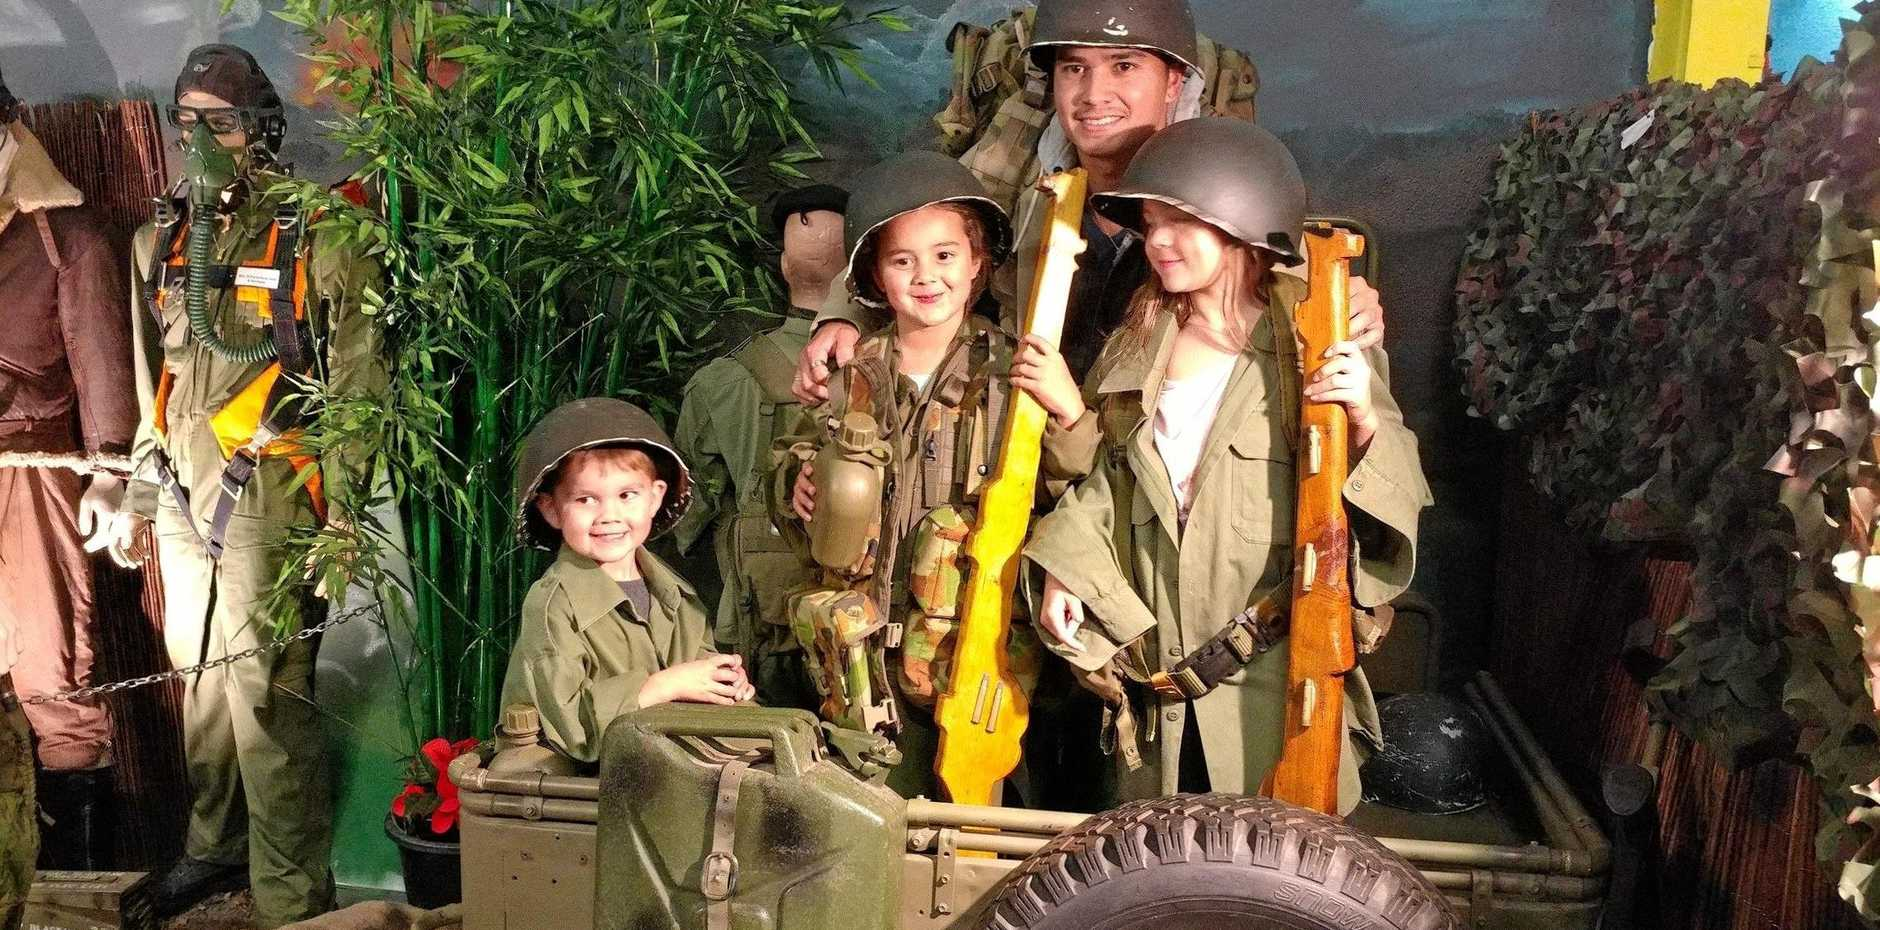 AUTHENTIC: It's family fun at the Central Coast Interactive War Exhibit with fascinating war history items on display.